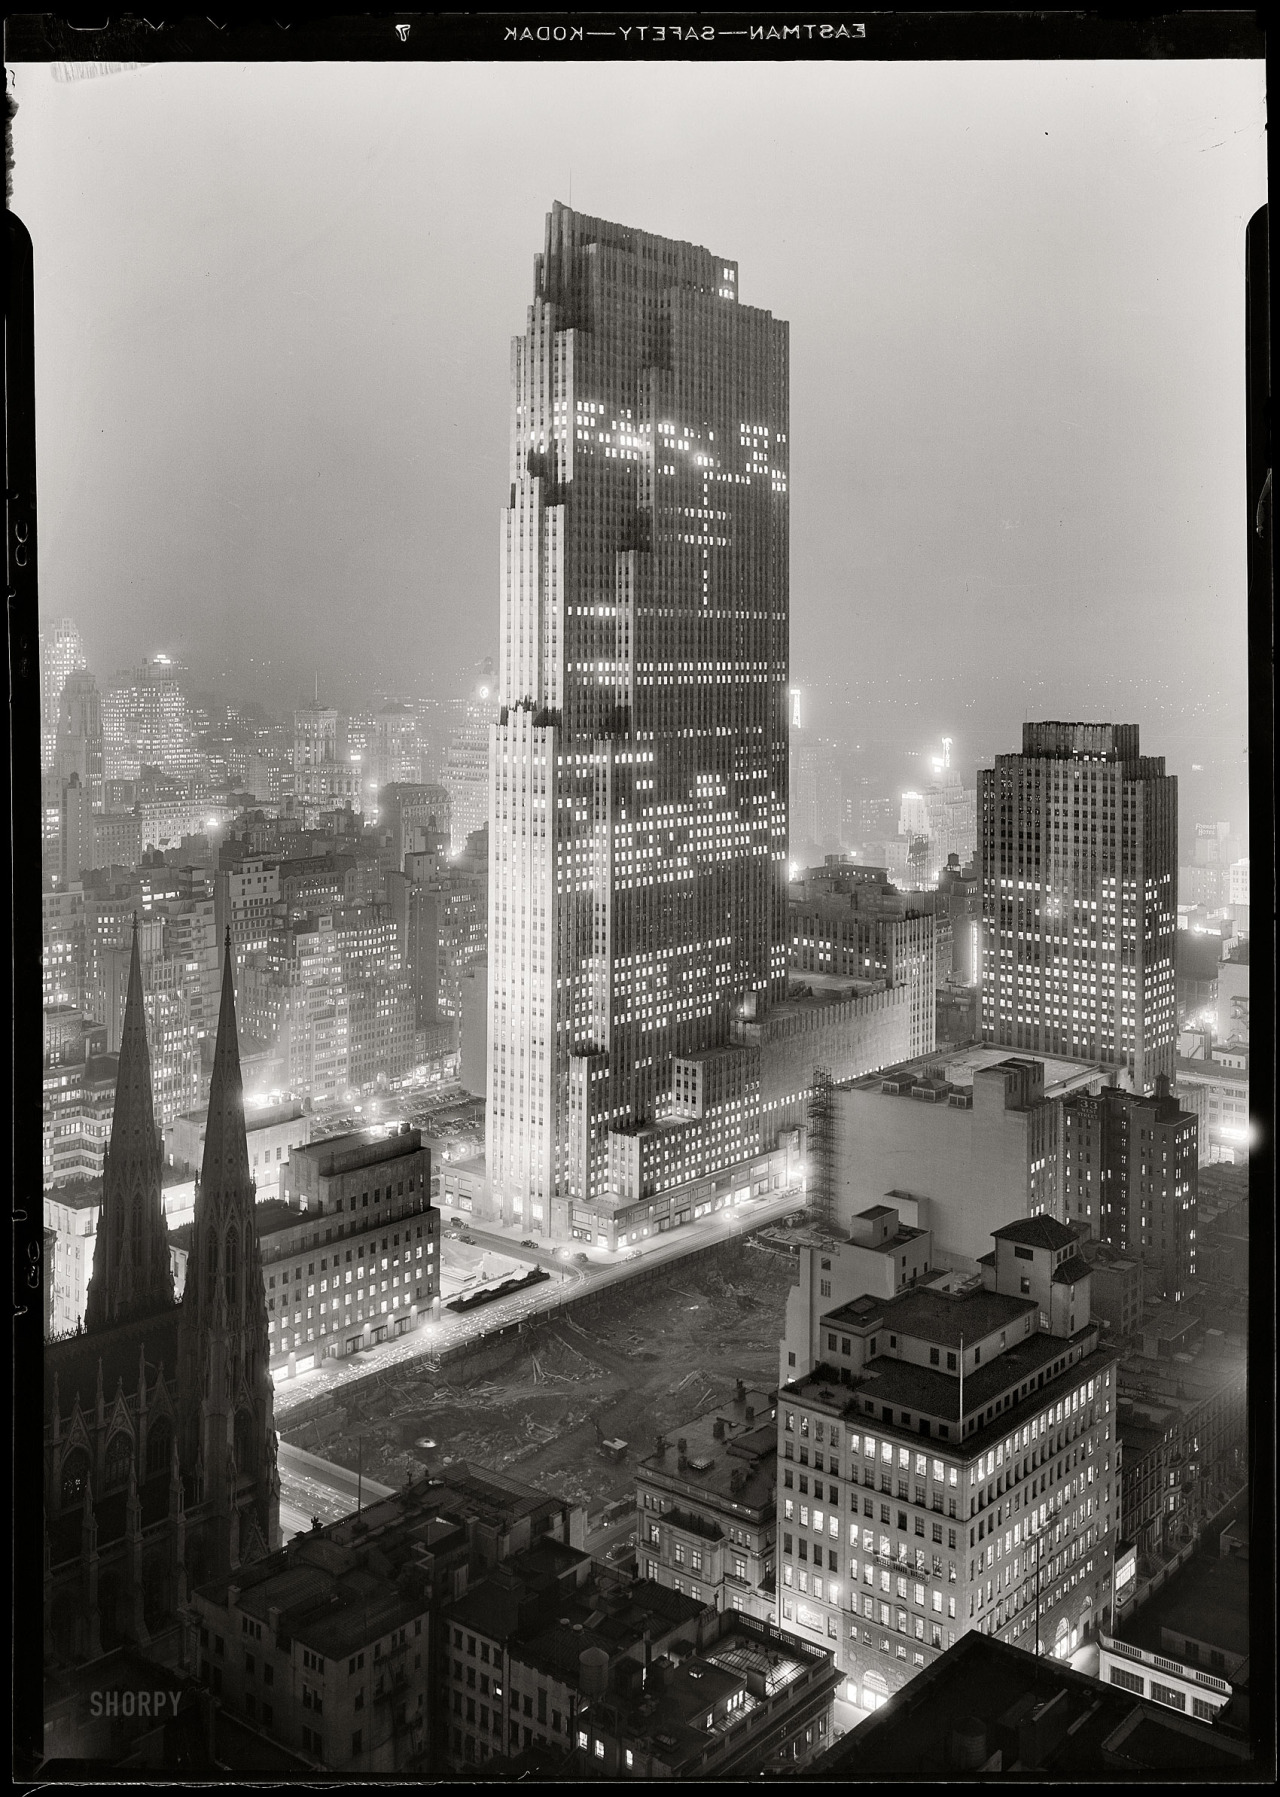 Rockefeller Center, Manhattan: December 5th, 1933 (via Shorpy Historical Photo Archive)